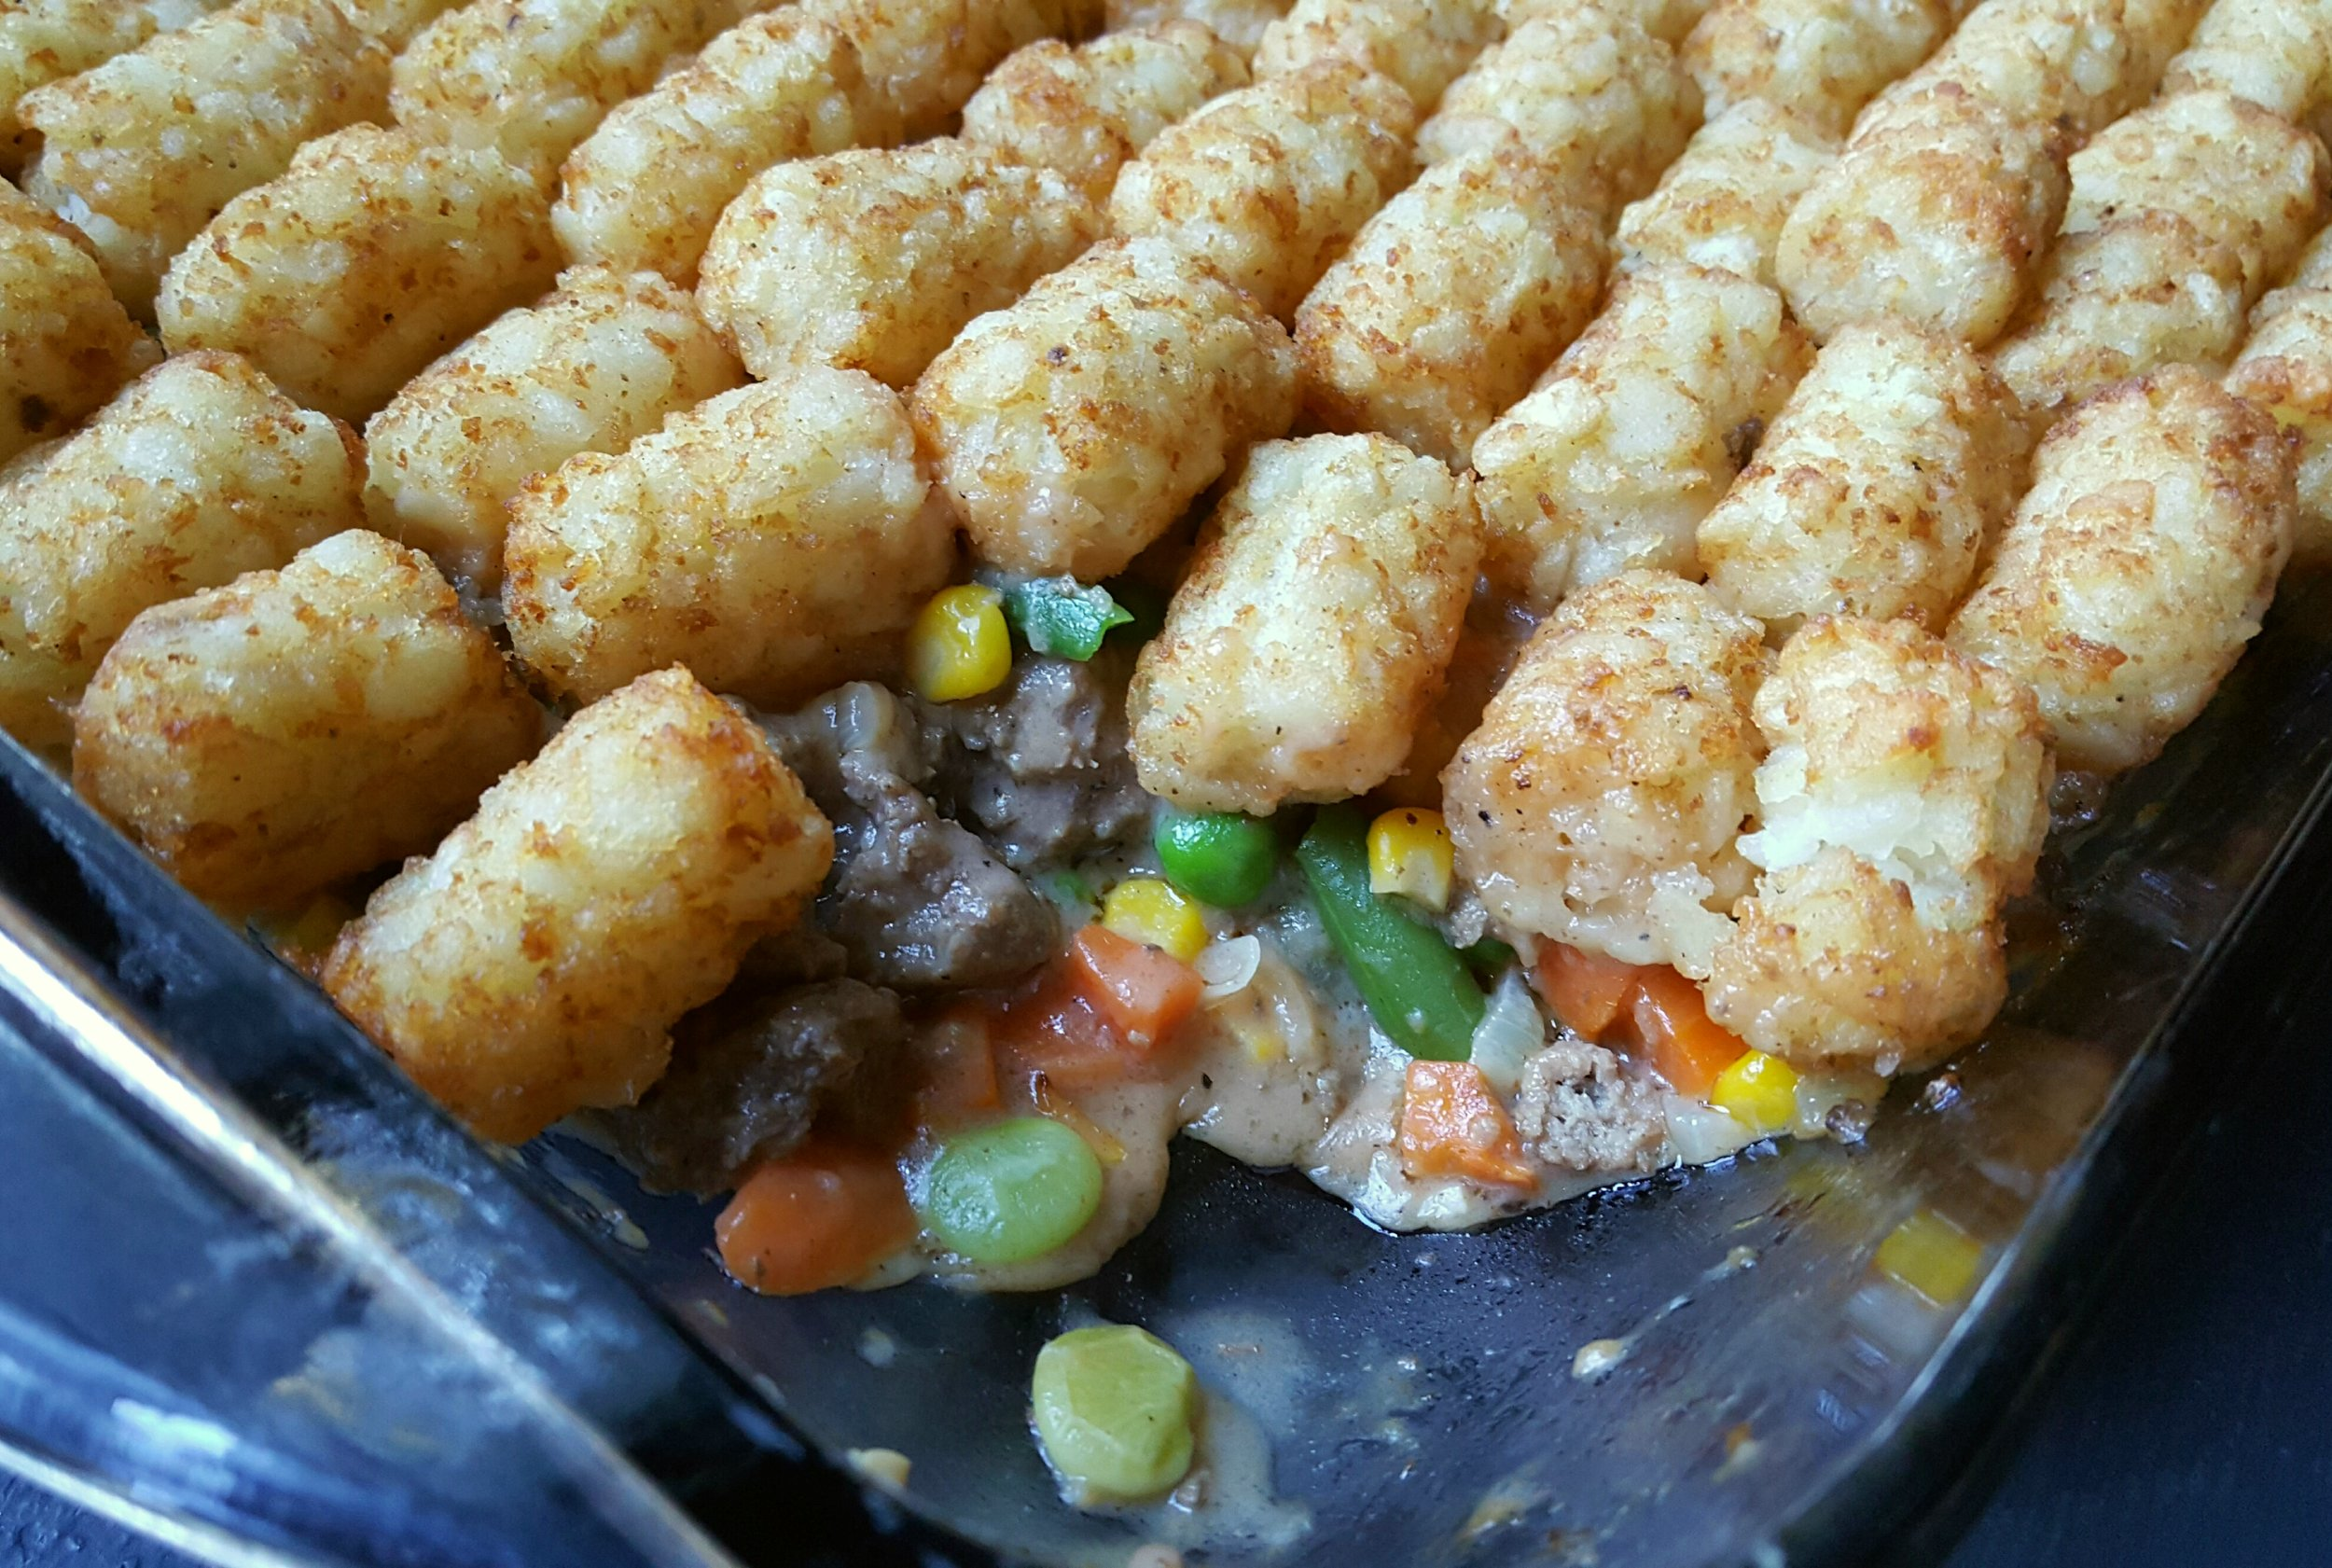 Our Retro Tater Tot Casserole is a fresh twist on a classic casserole. We ditch canned condensed soup and make our own creamy, savory sauce from scratch. And it's totally oven- and microwave-ready. Just heat, eat and enjoy.